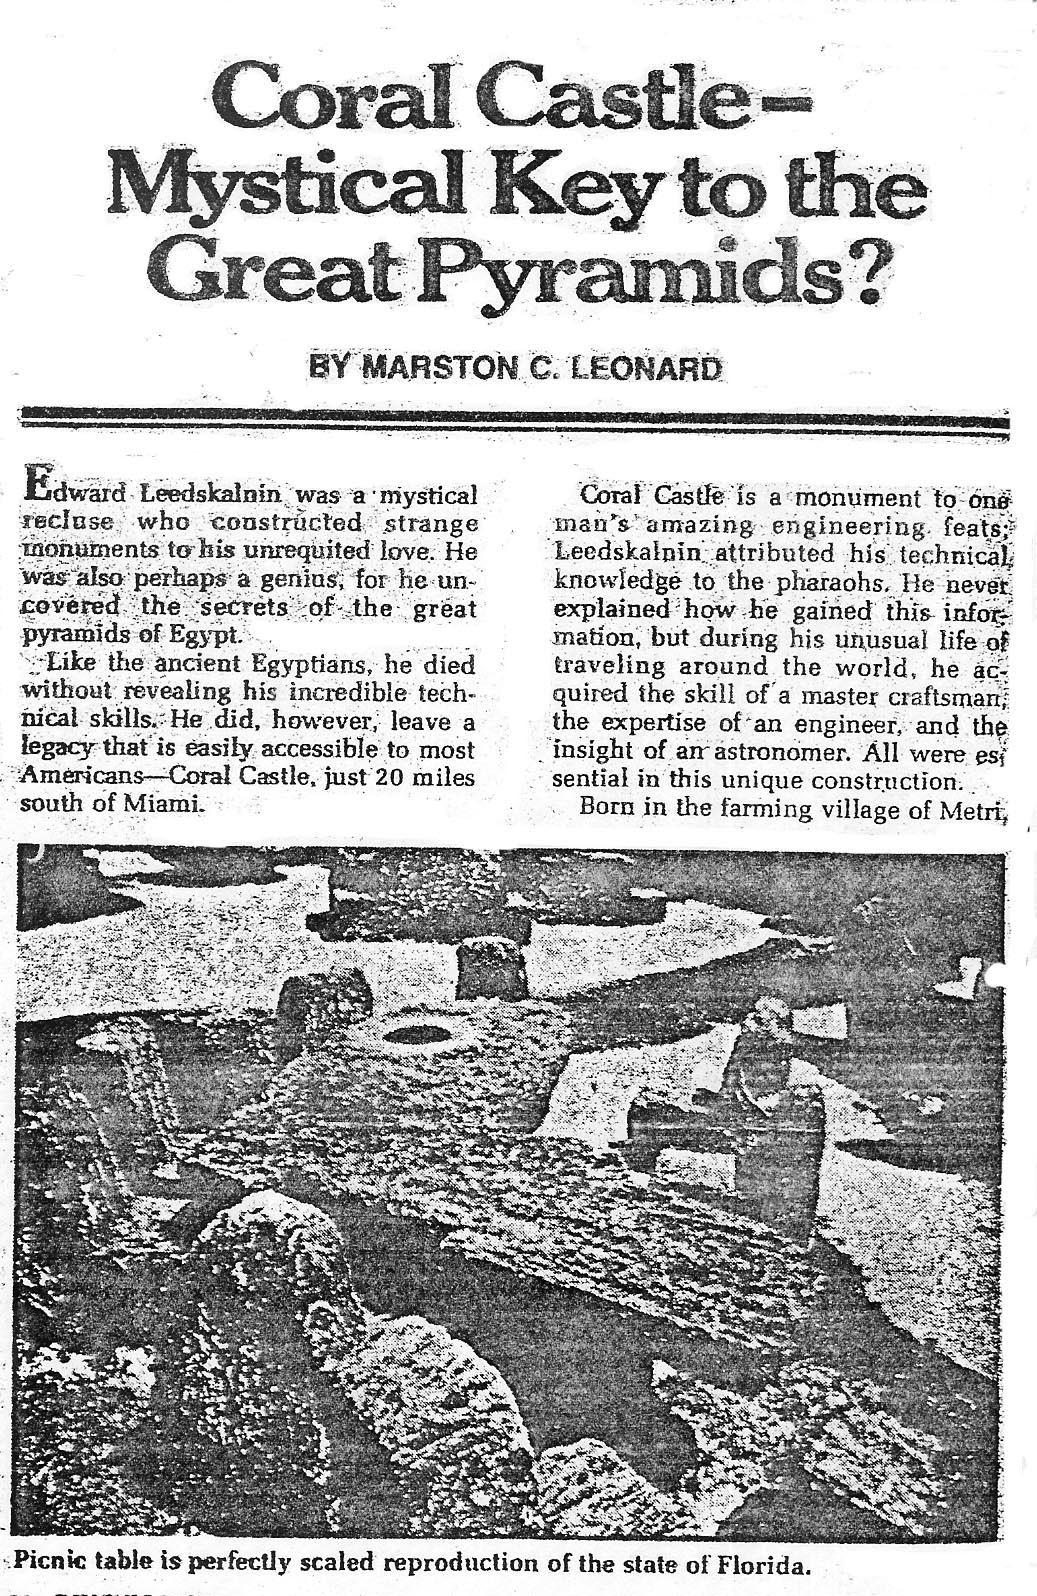 M. C. Bob Leonard article on Coral Castle in Floirida